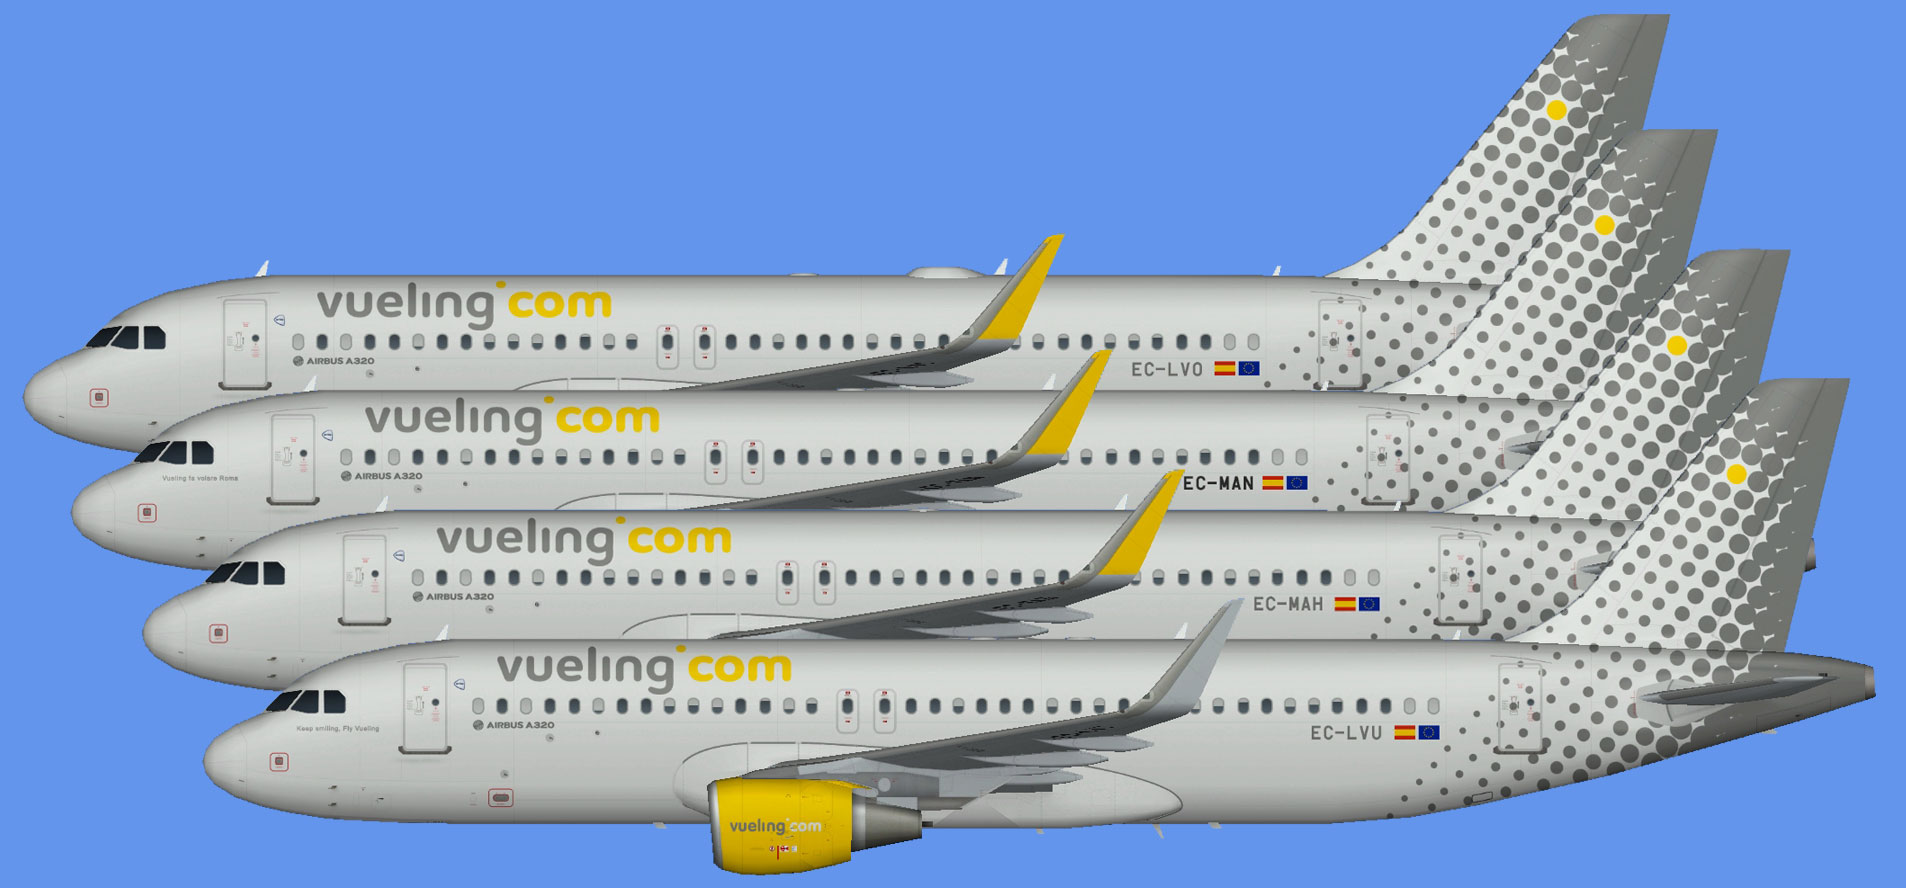 Vueling Airbus A320 CFM Sharklets